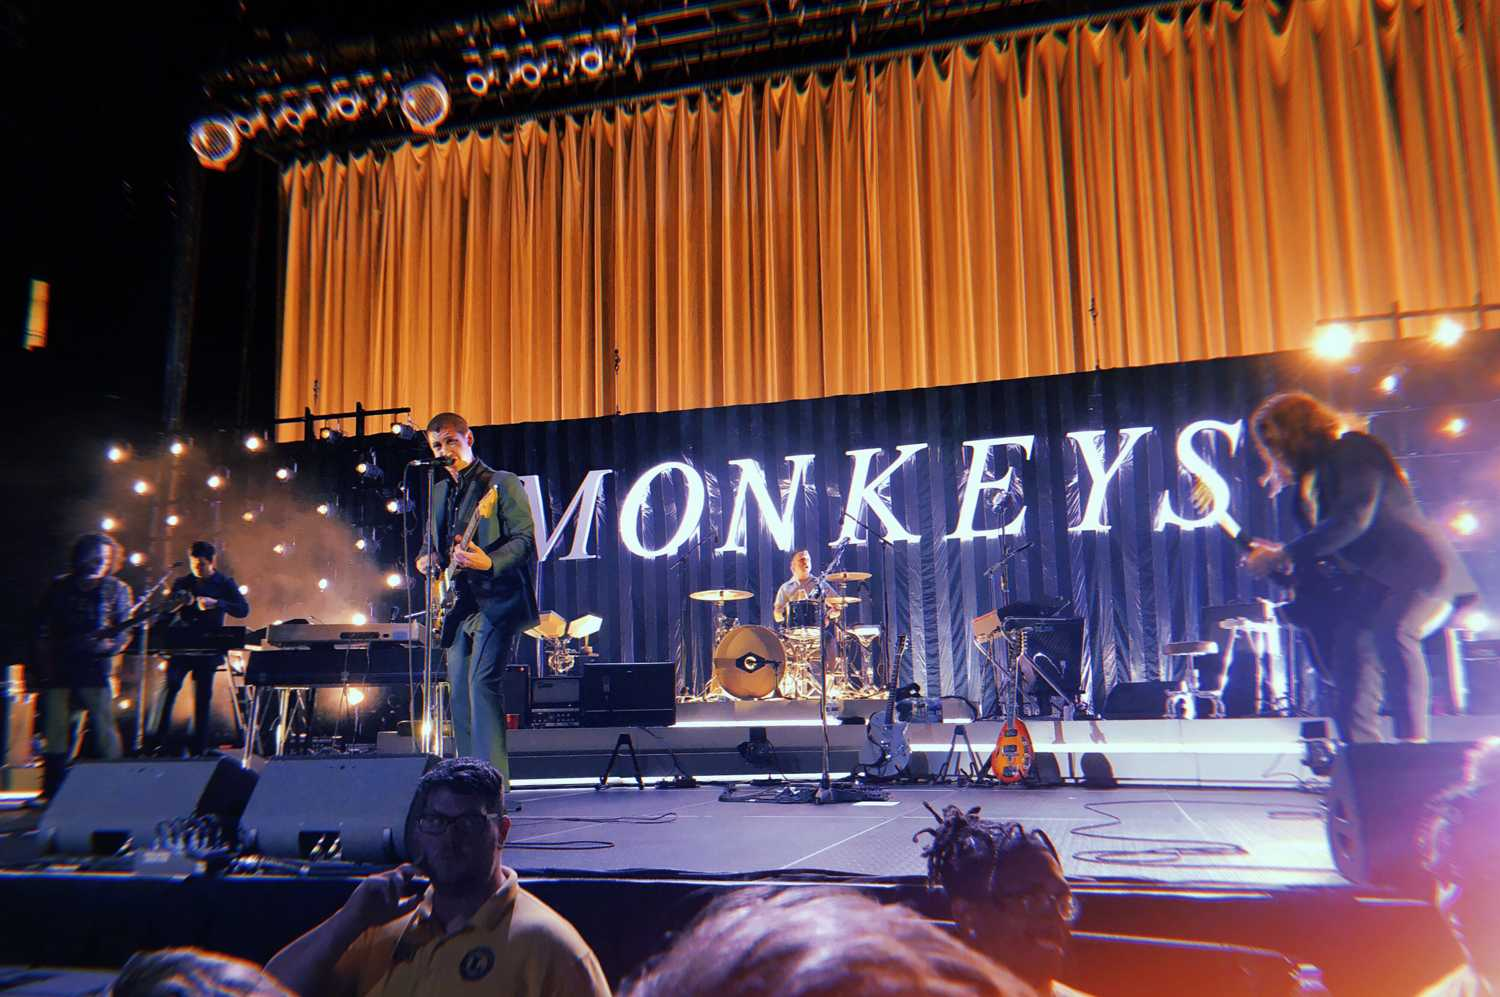 The Arctic Monkeys performed at the Petersen Events Center July 31. (Photo courtesy of Abbie Tesfay)